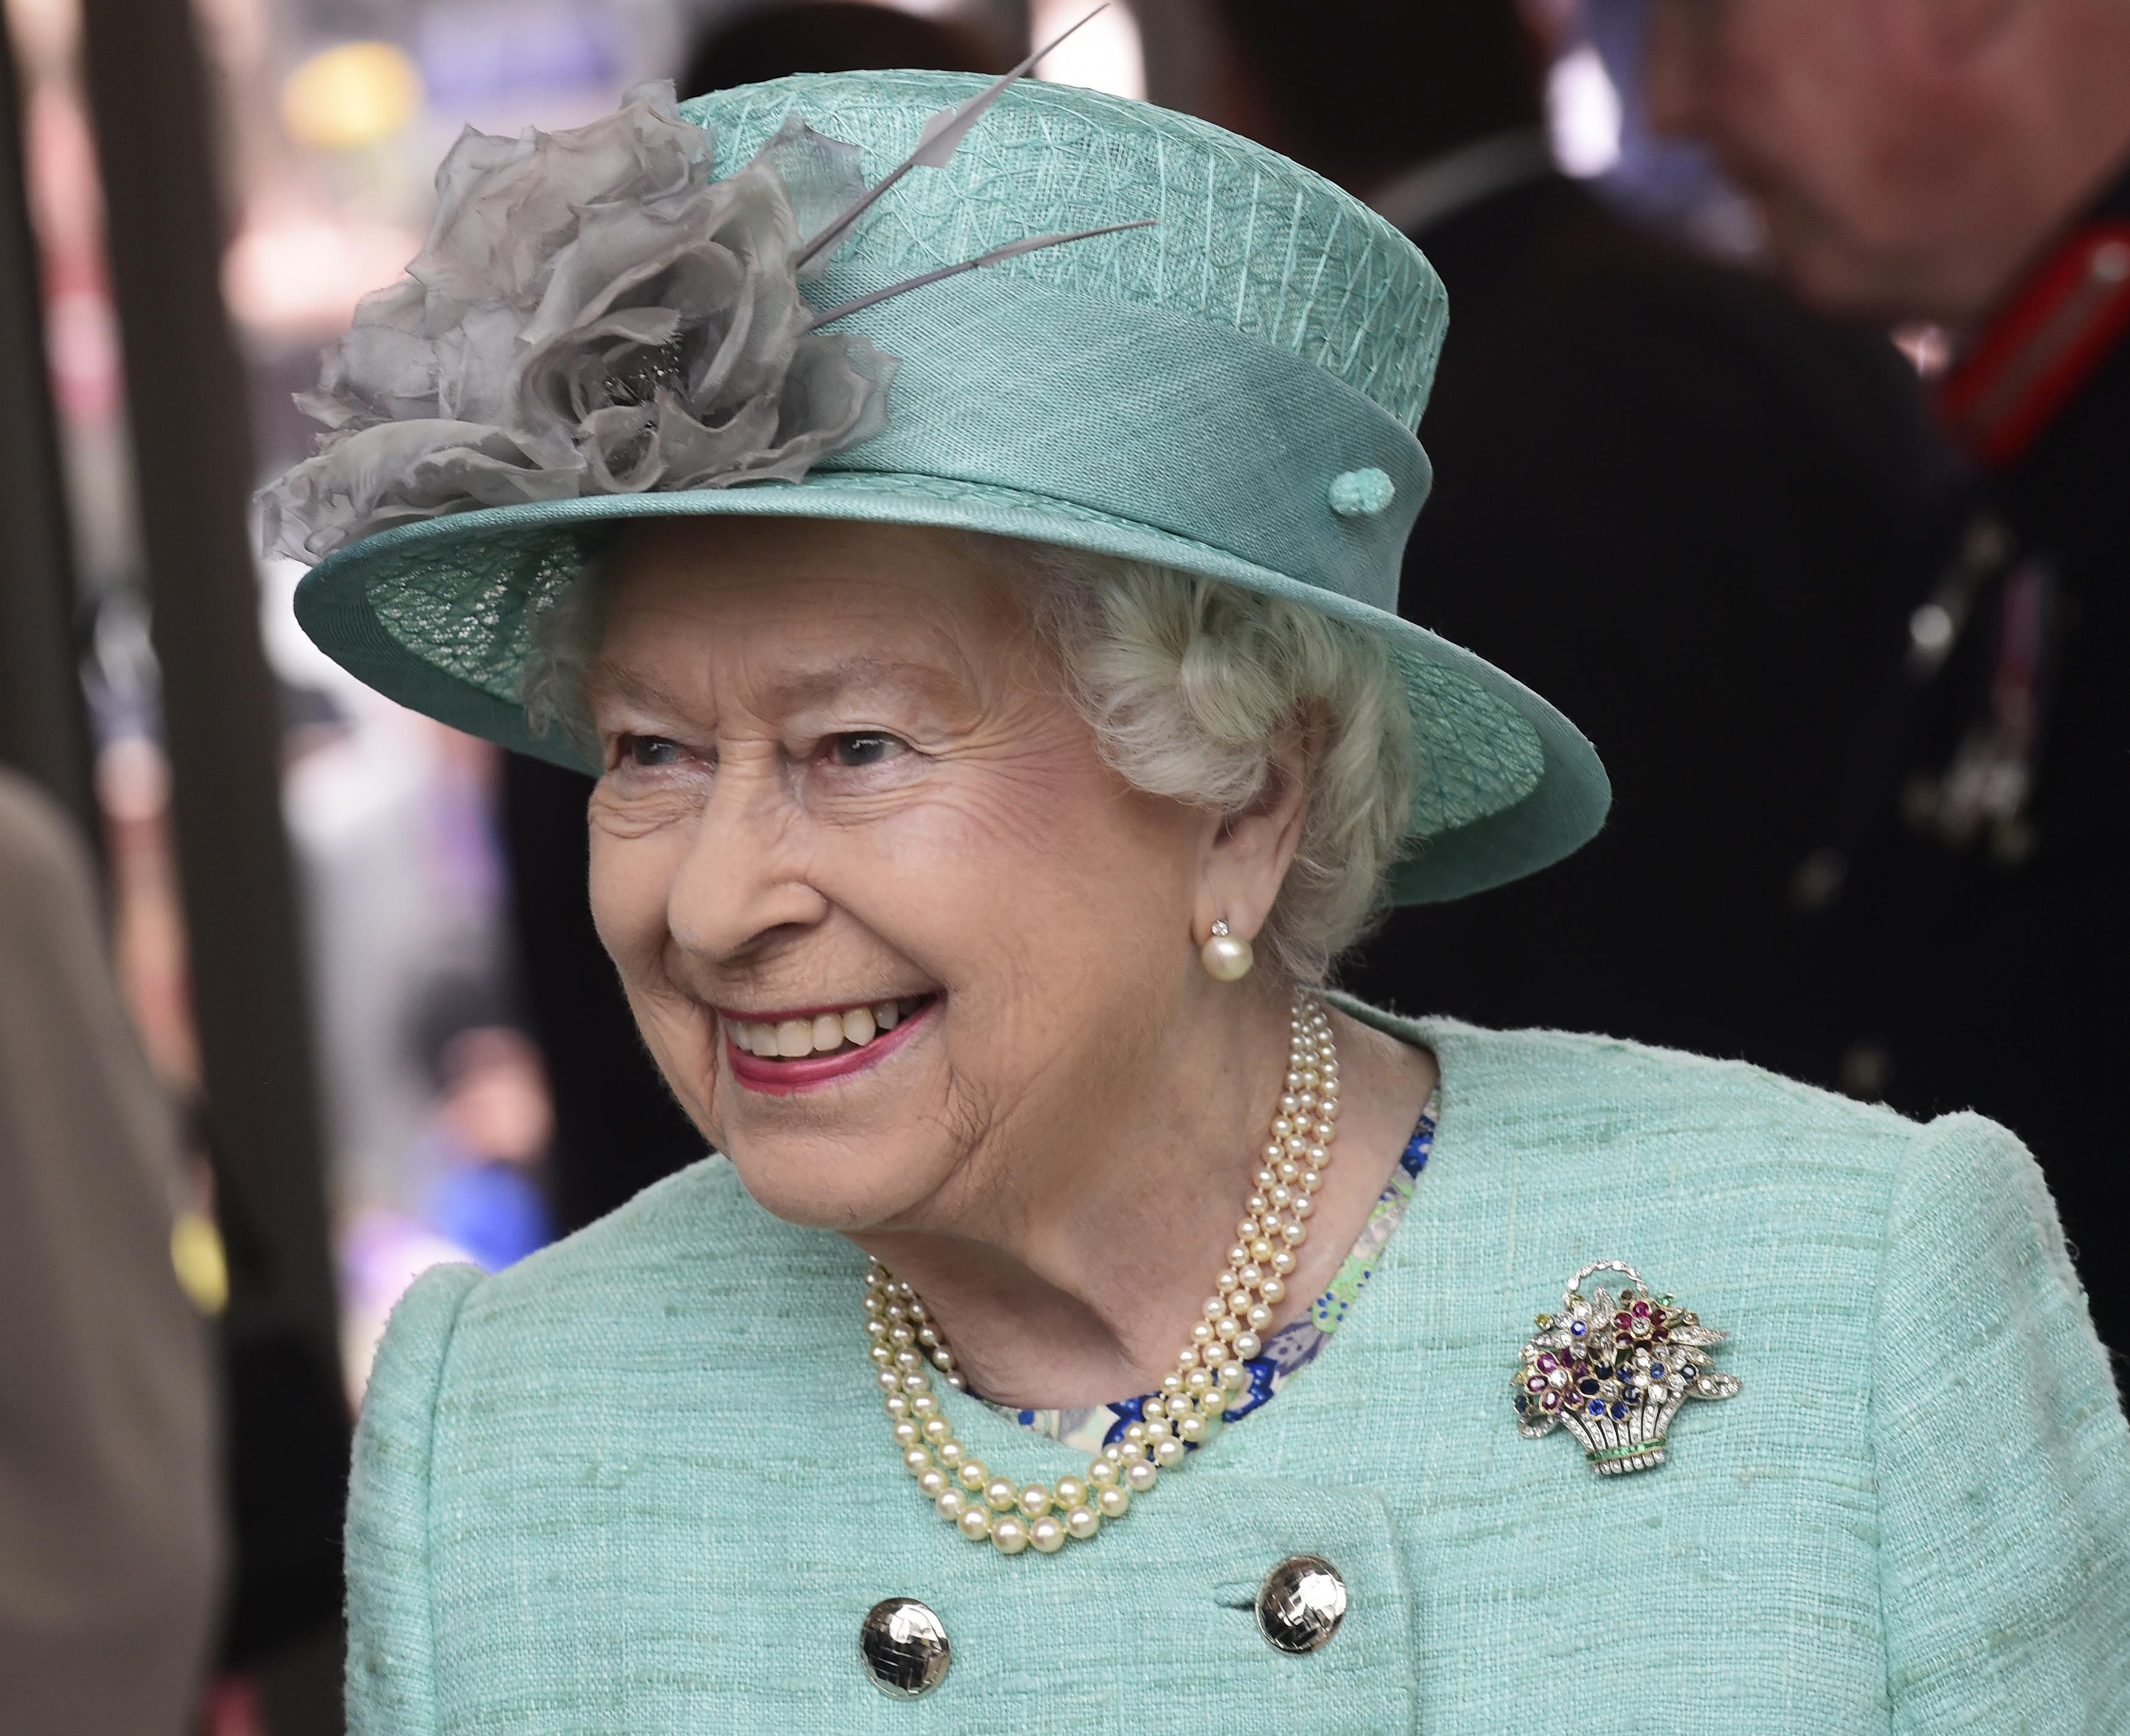 Queen Elizabeth is a great dancer and loves music